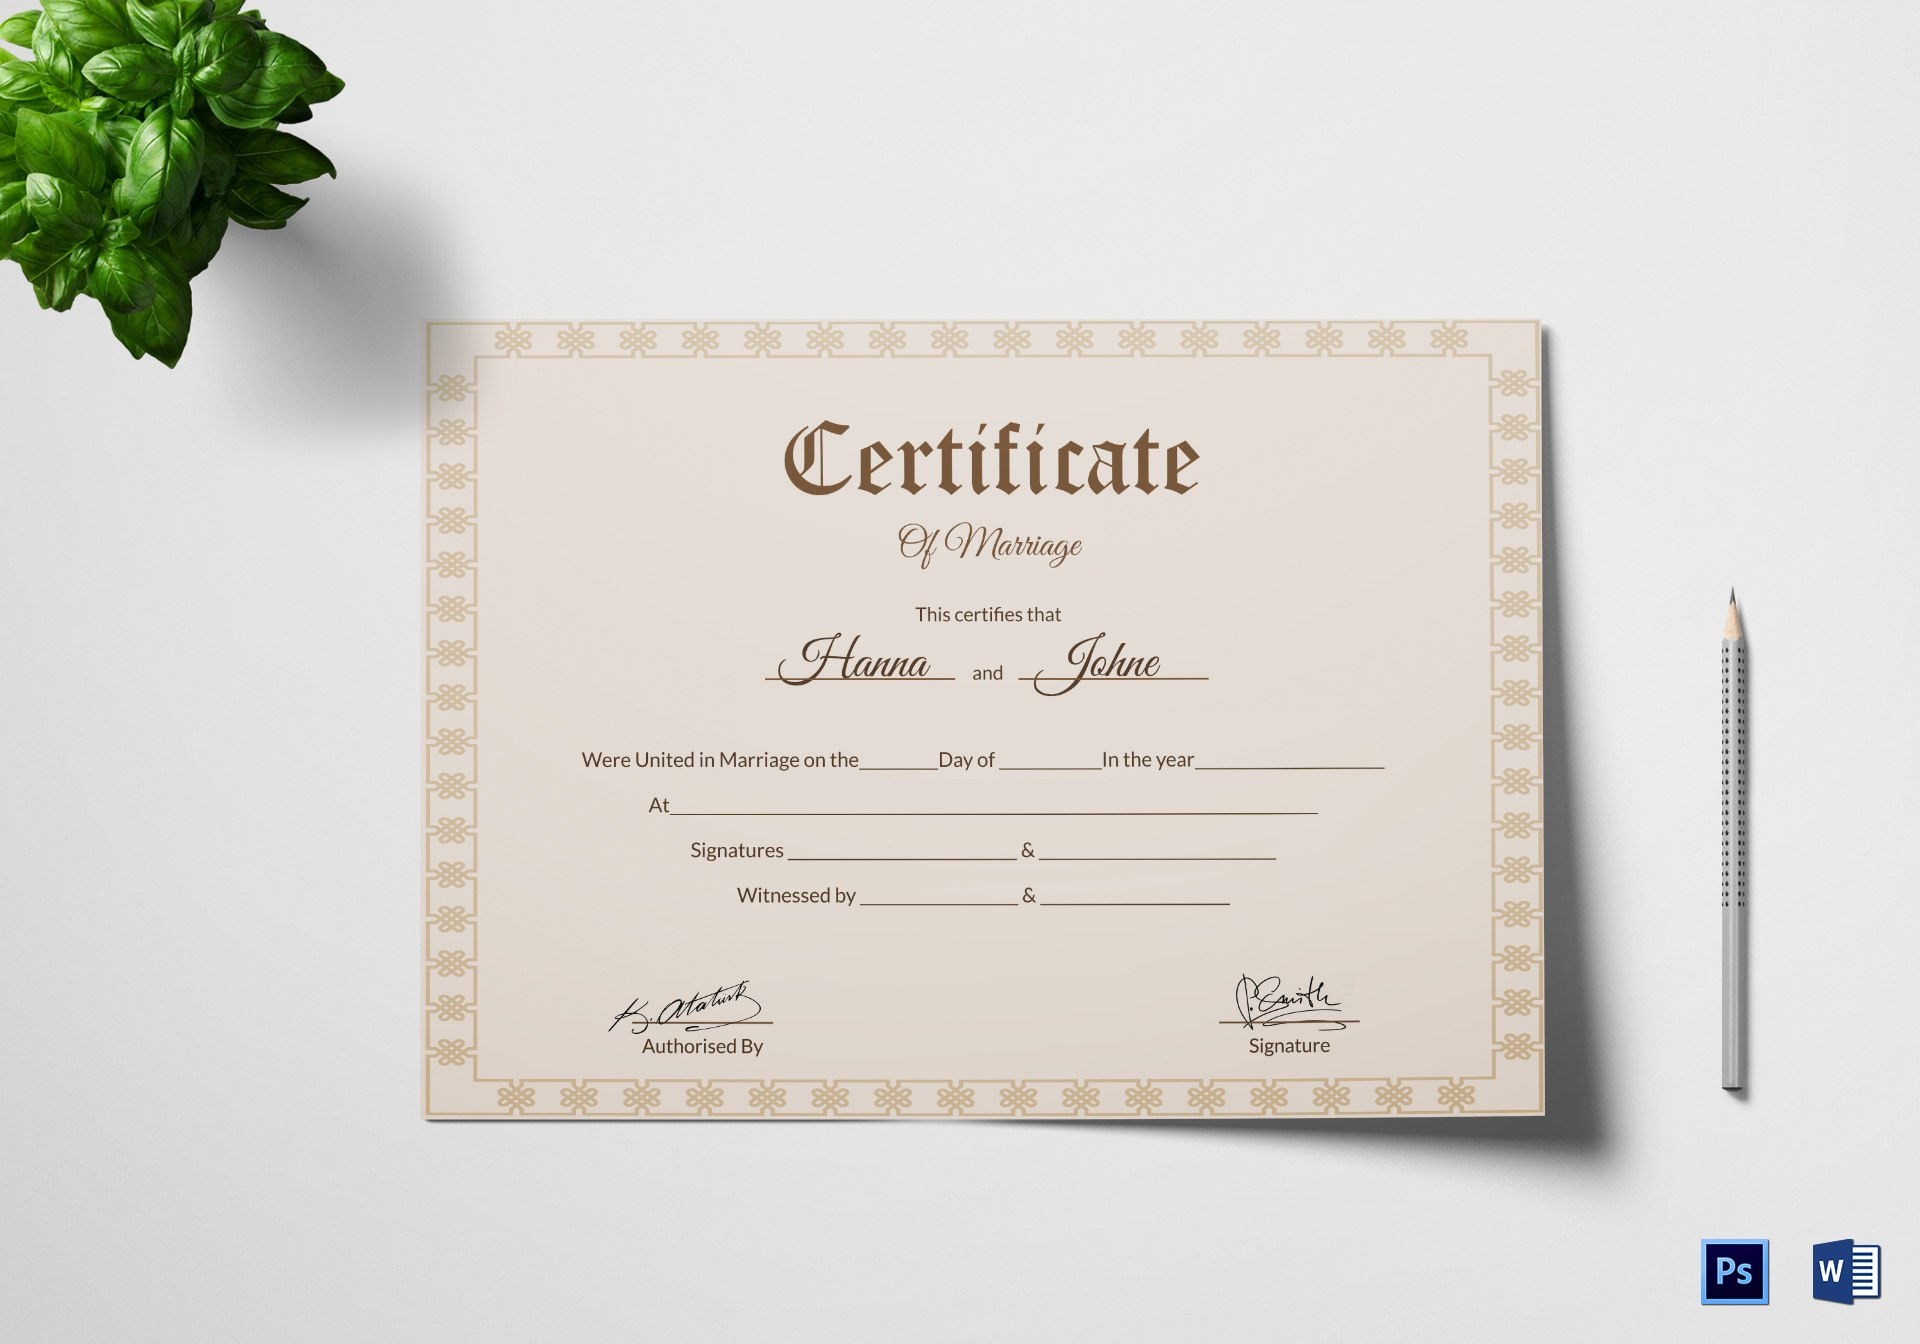 Certificate Of Marriage Template Excellent Ideas Example In The With Certificate Of Marriage Template